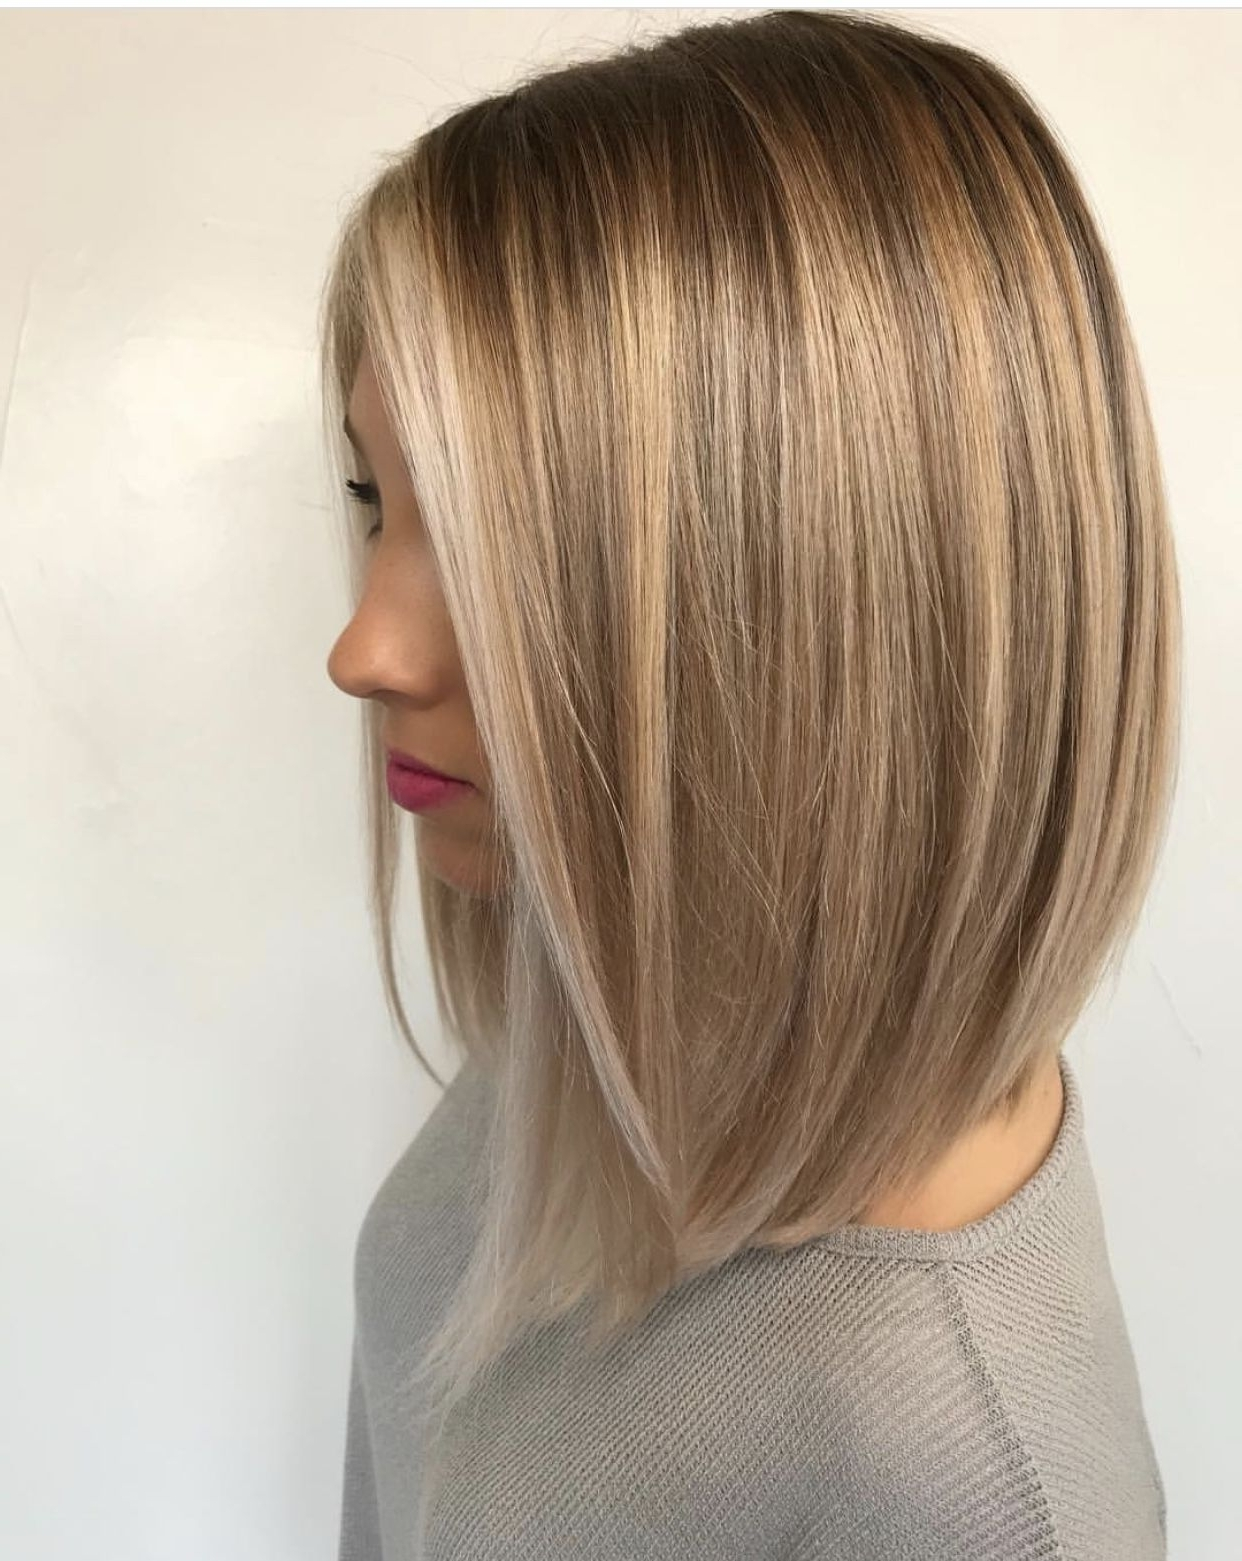 Current Cream Colored Bob Blonde Hairstyles Intended For Long Bob Haircut, Blonde Hair Color, Dirty Blonde Color, Stylish (View 4 of 20)